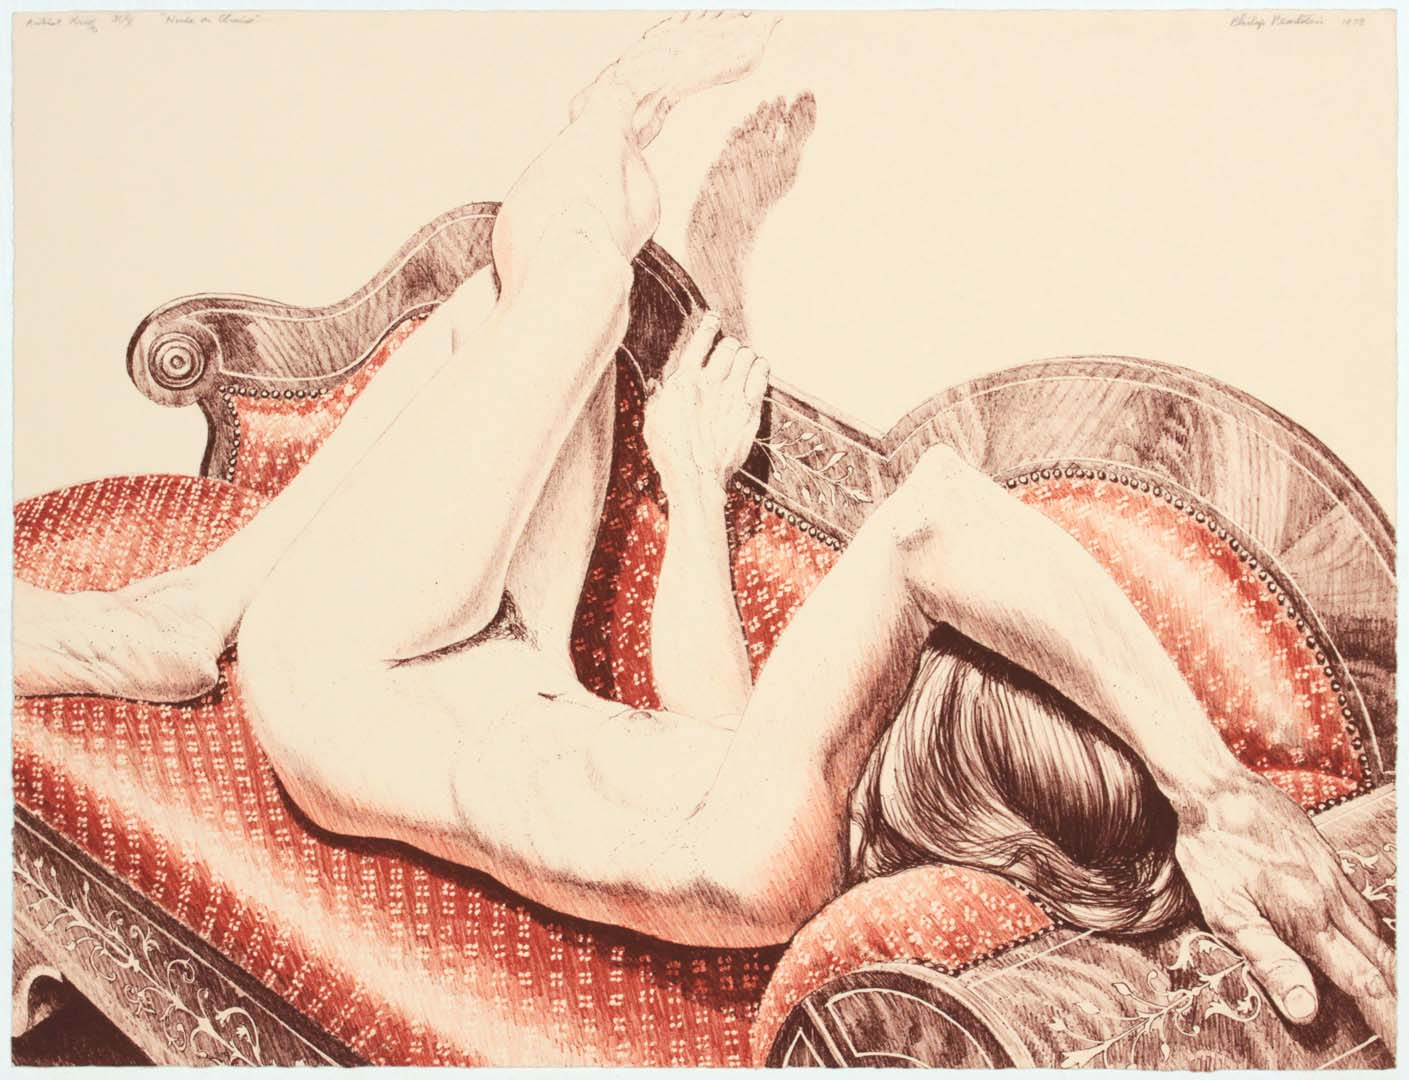 1978 Nude on Chaise Lithograph on Paper 17.125 x 22.125